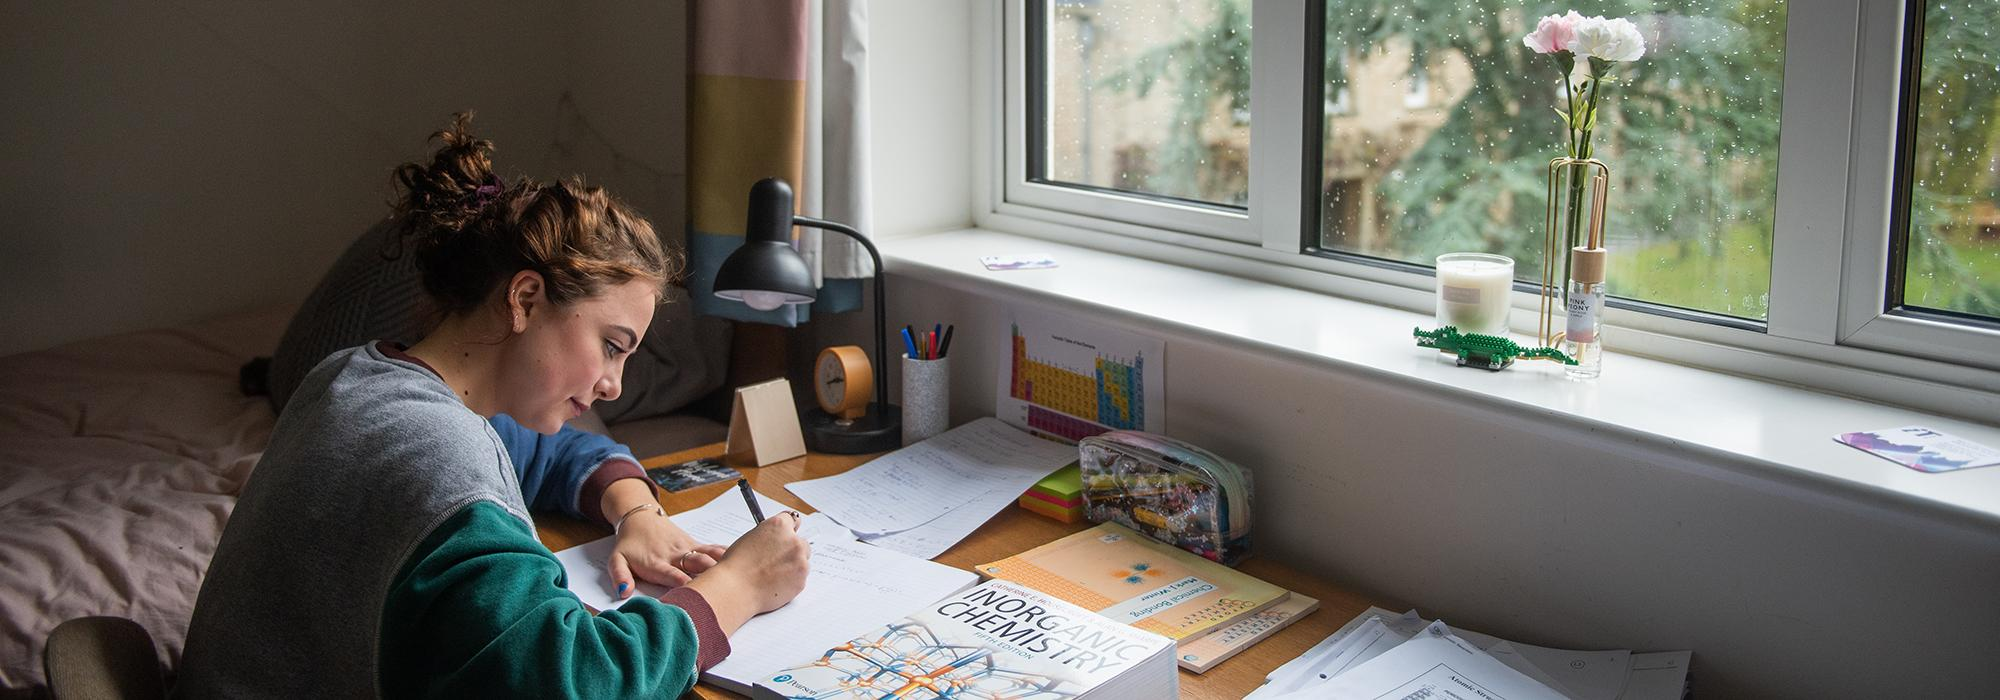 A student in their room in North Lodge, 2019 - Photo: © John Cairns - www.johncairns.co.uk